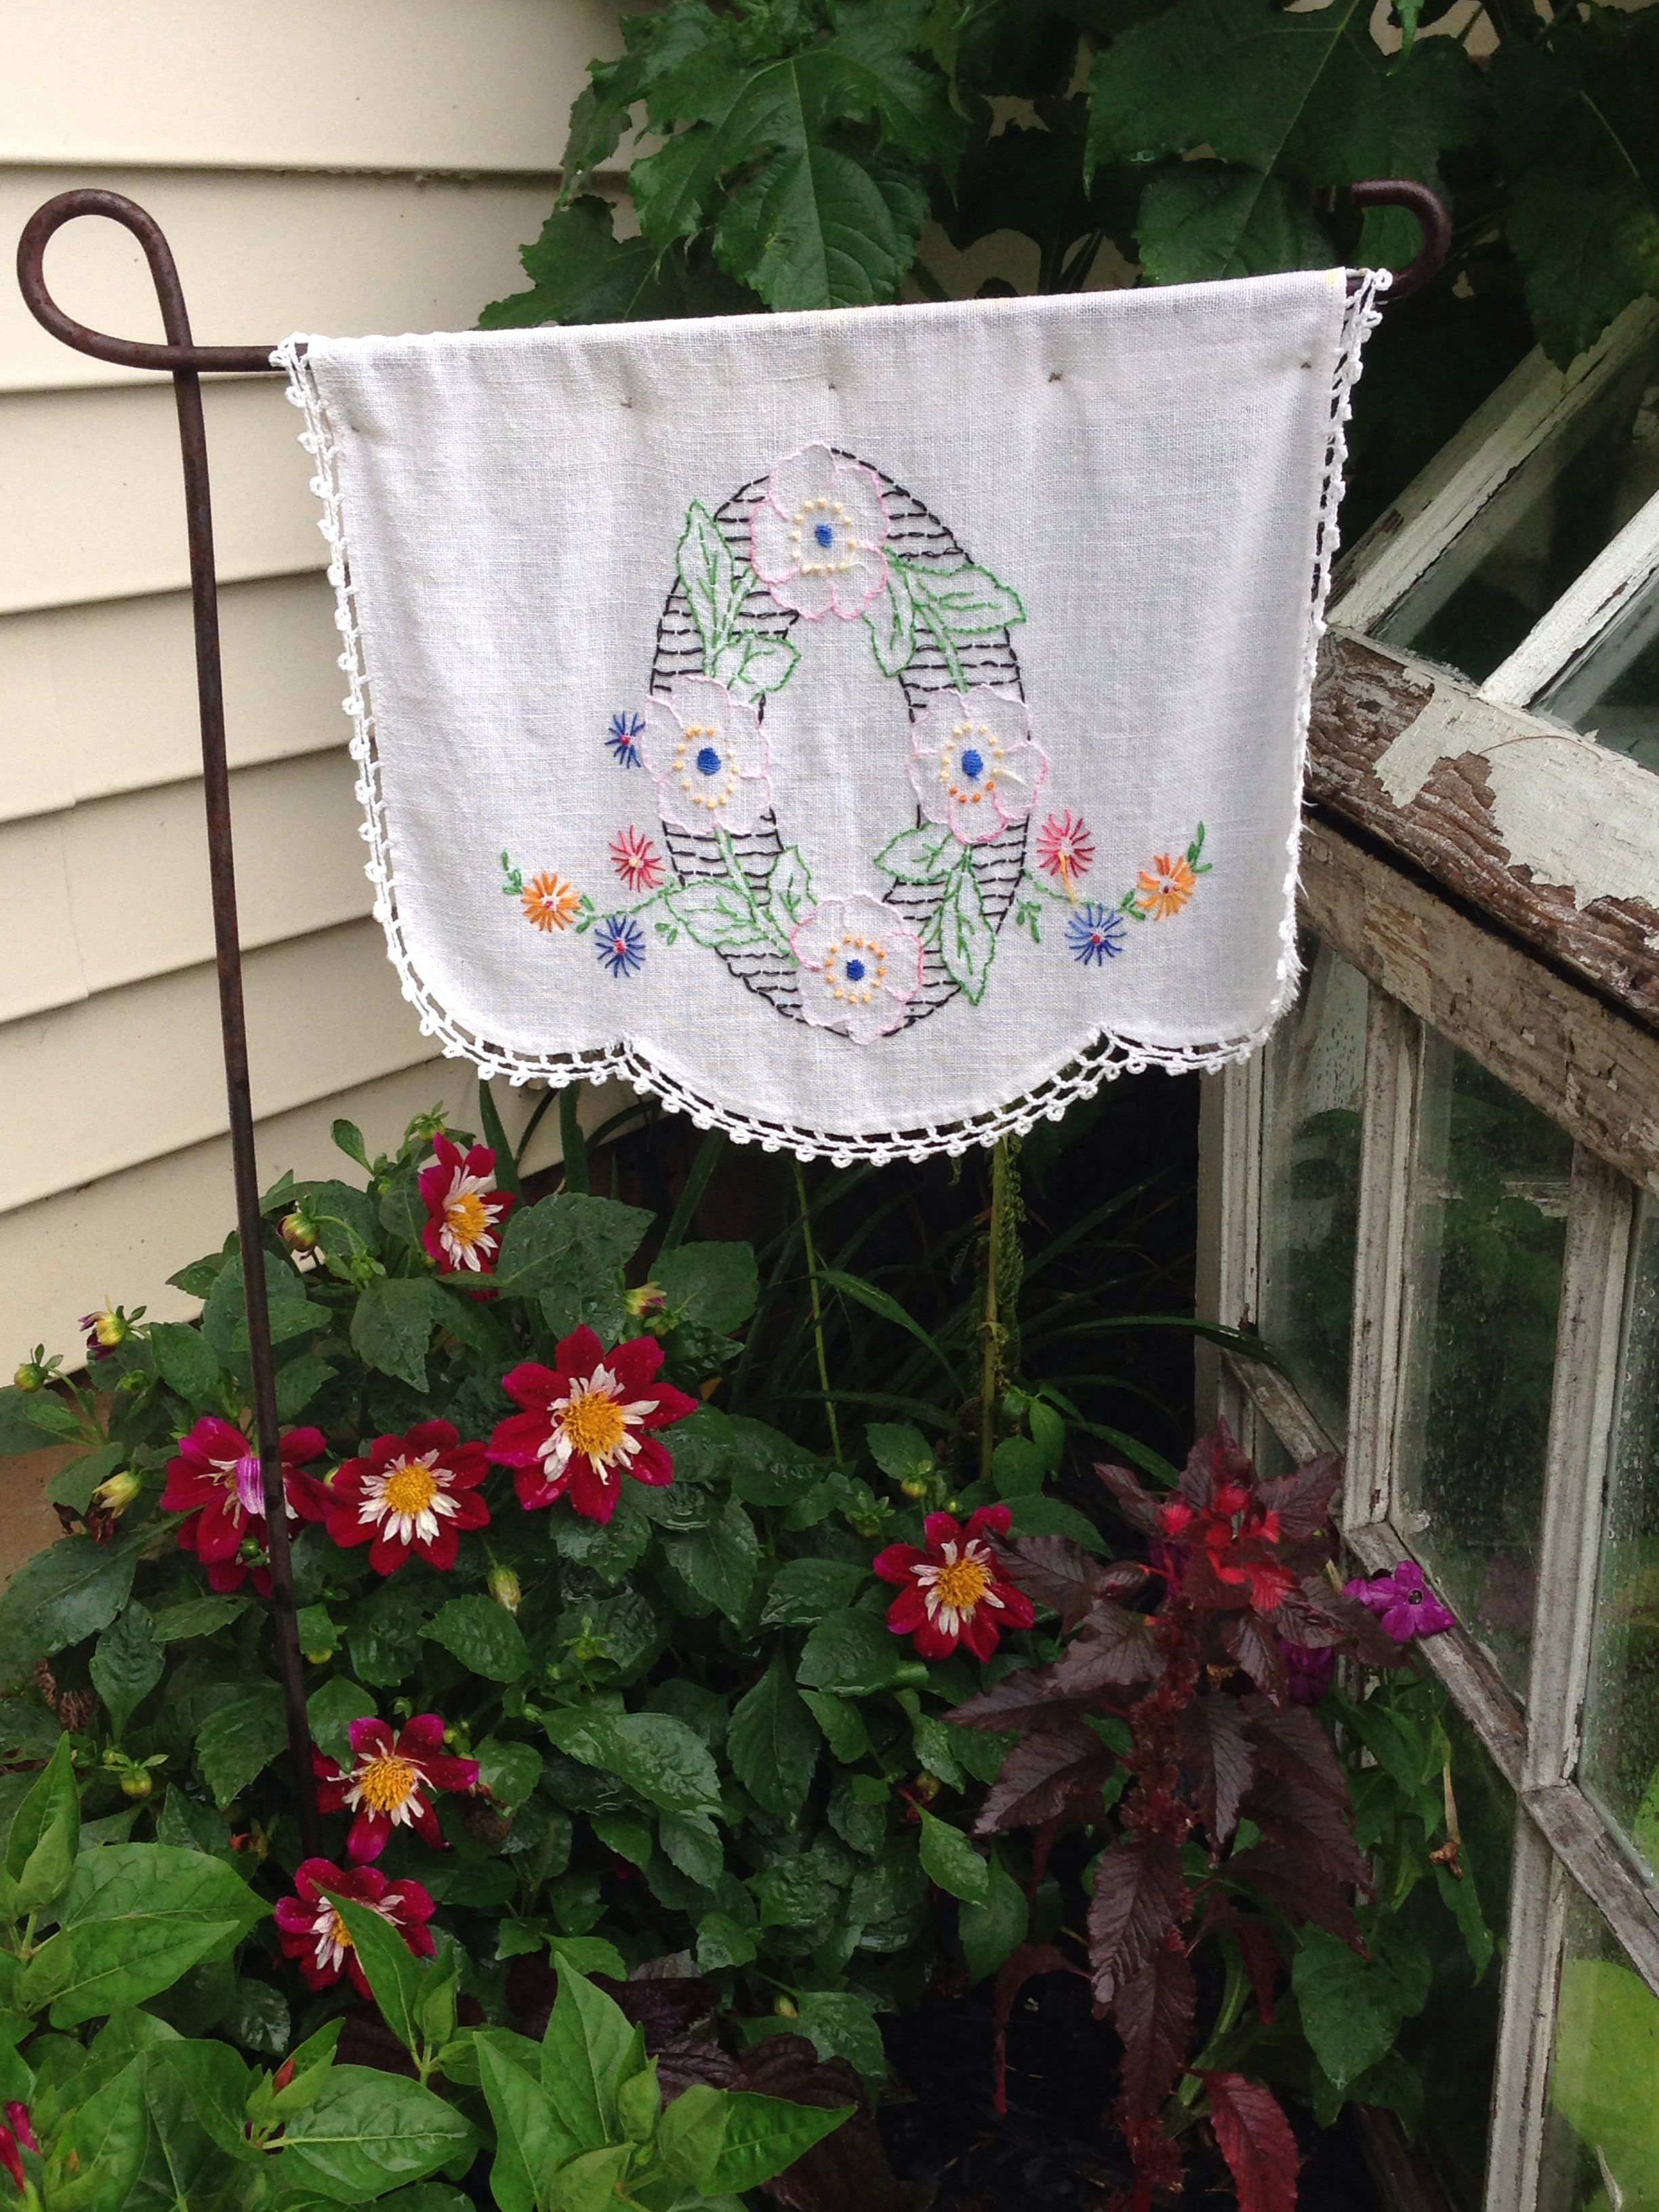 DIY Garden Flag made from a vintage doily...a simple way to add charm to your Summer garden!